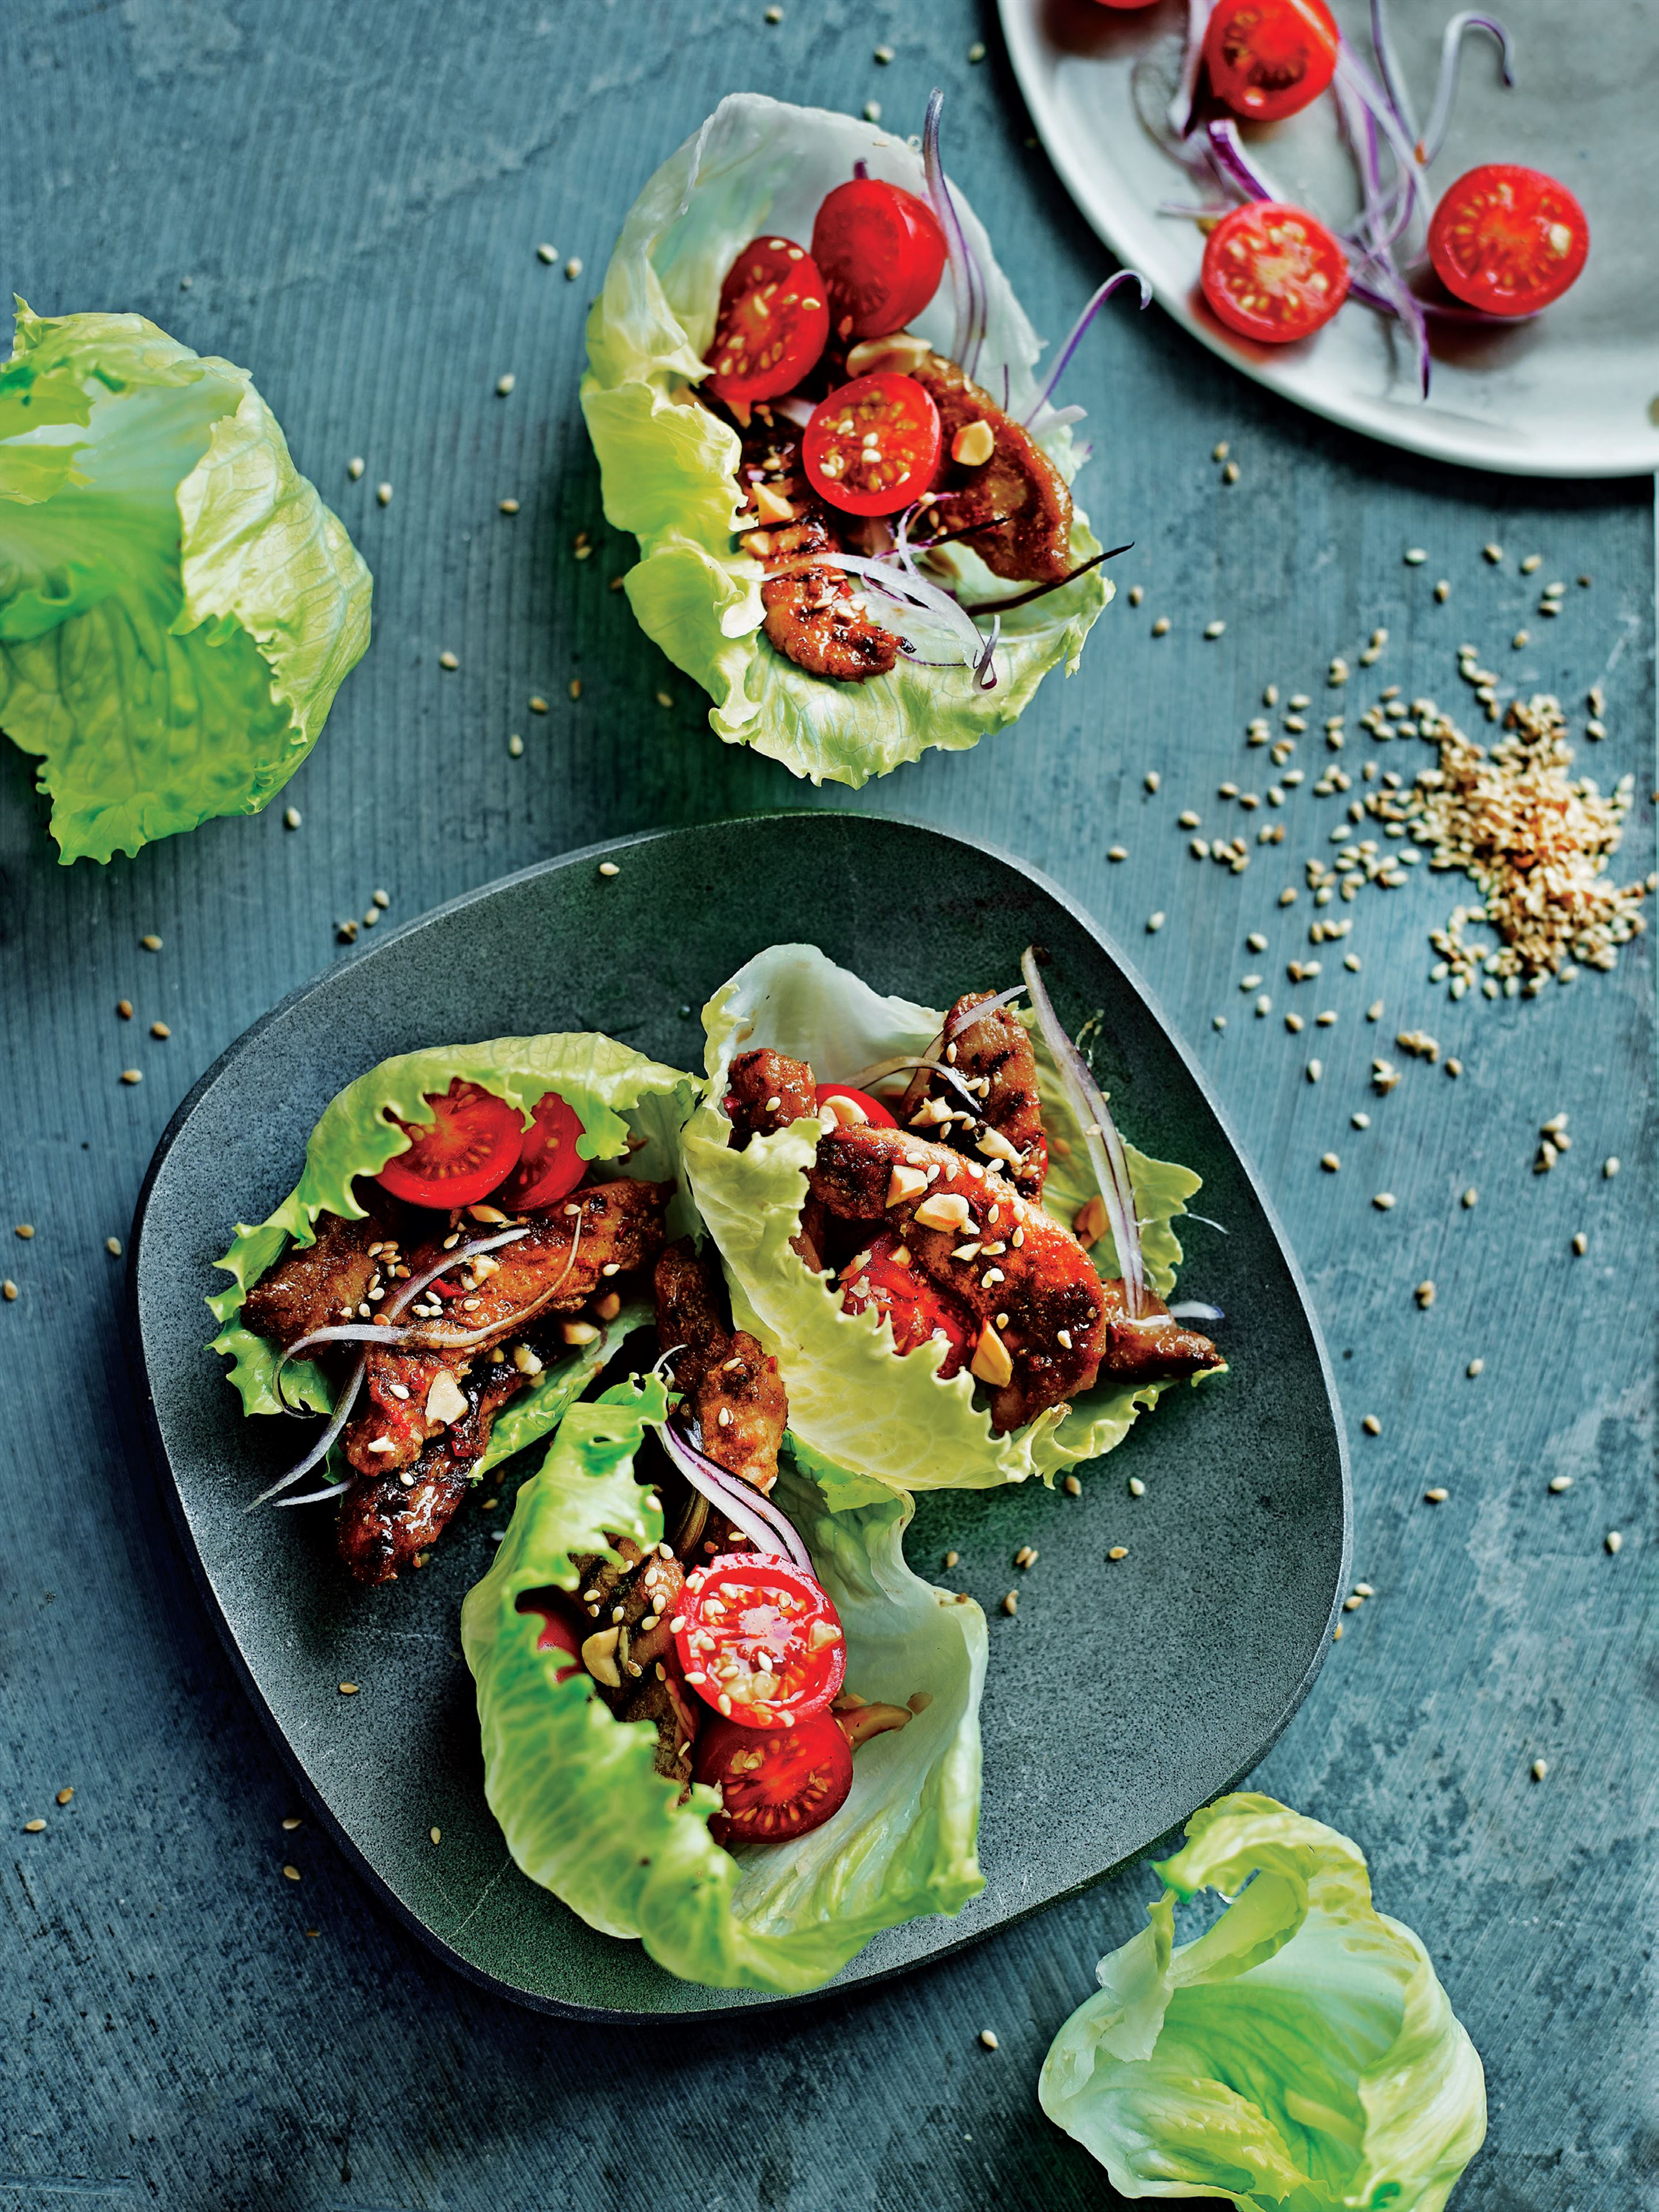 Cheeky chicken and lettuce roll-ups